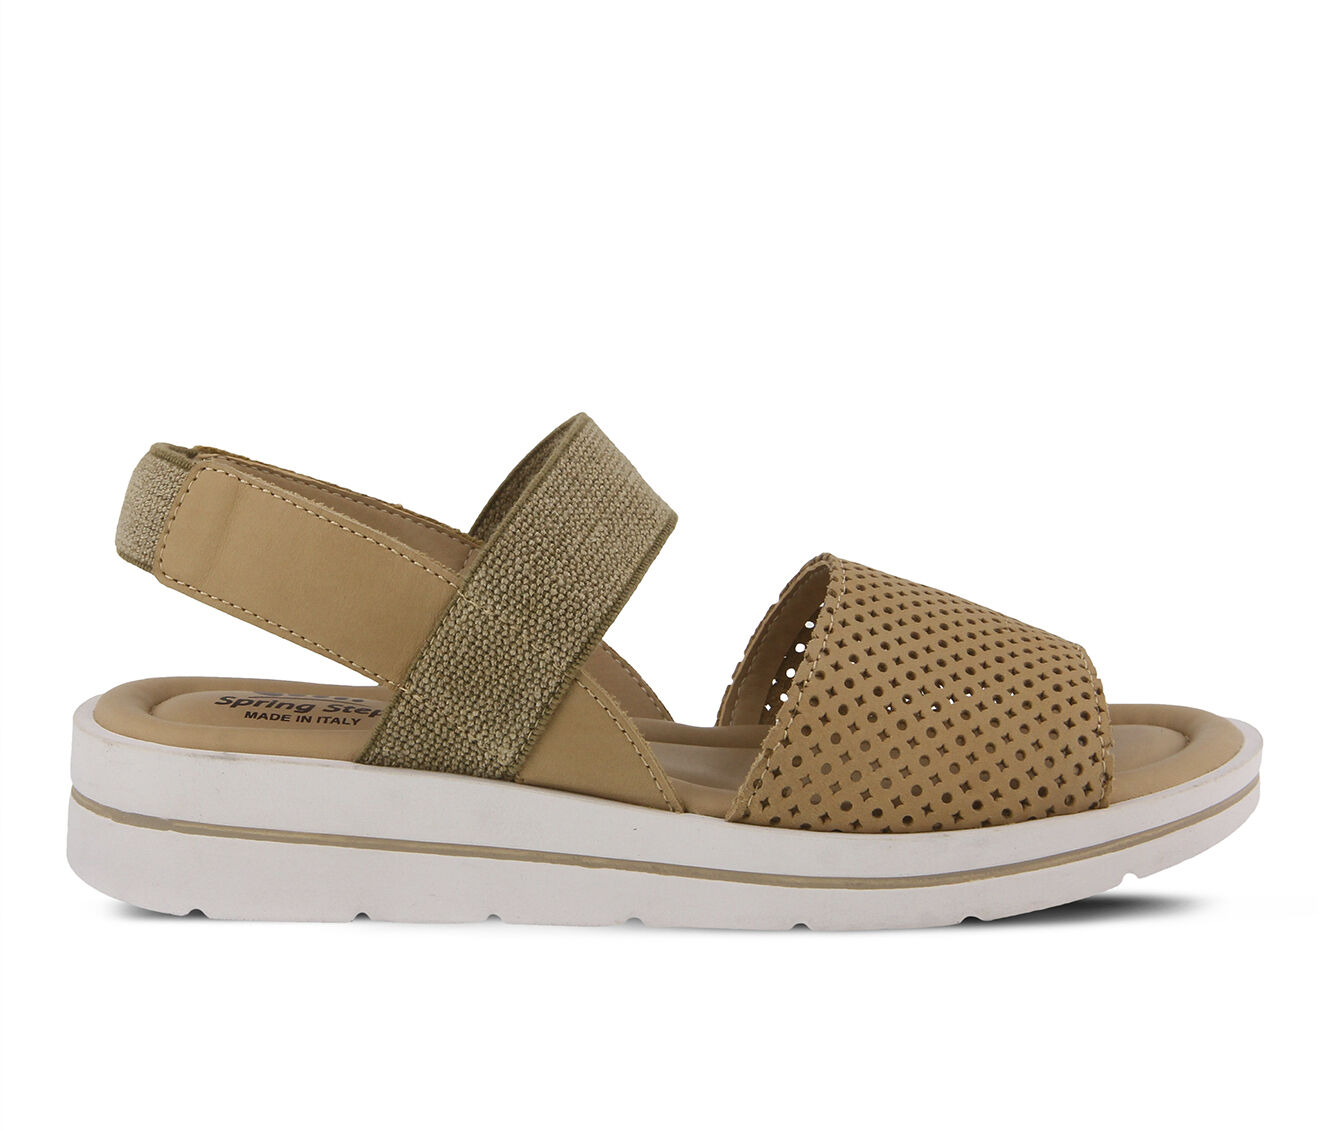 fast shipping Women's SPRING STEP Travel Sandals Beige